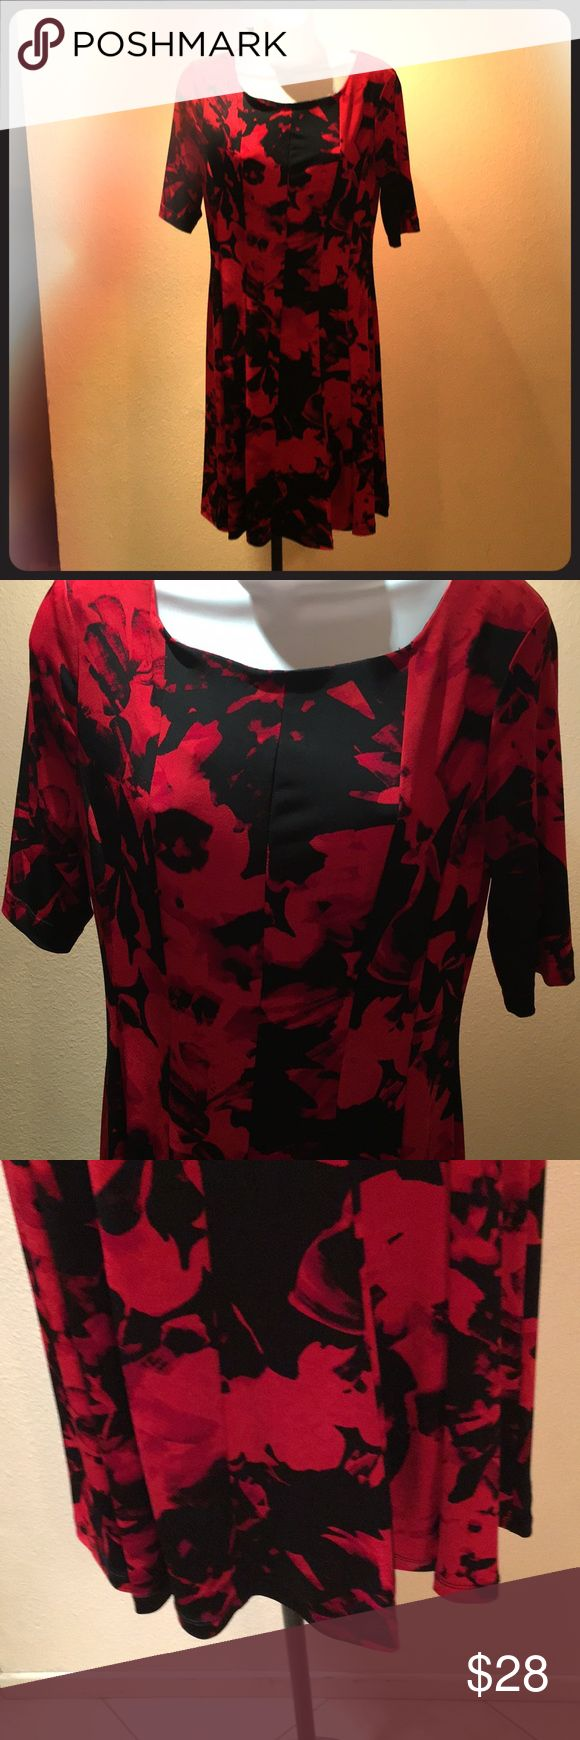 Floral print dress size 8 connected apparel. Cute red and black floral dress. Scooped neckline, short sleeves. Bust 34, waist 28, hips 38, length 37 1/3, sleeve length 14. (All measurement are taken and doubled. New without tags. connected apparel Dresses